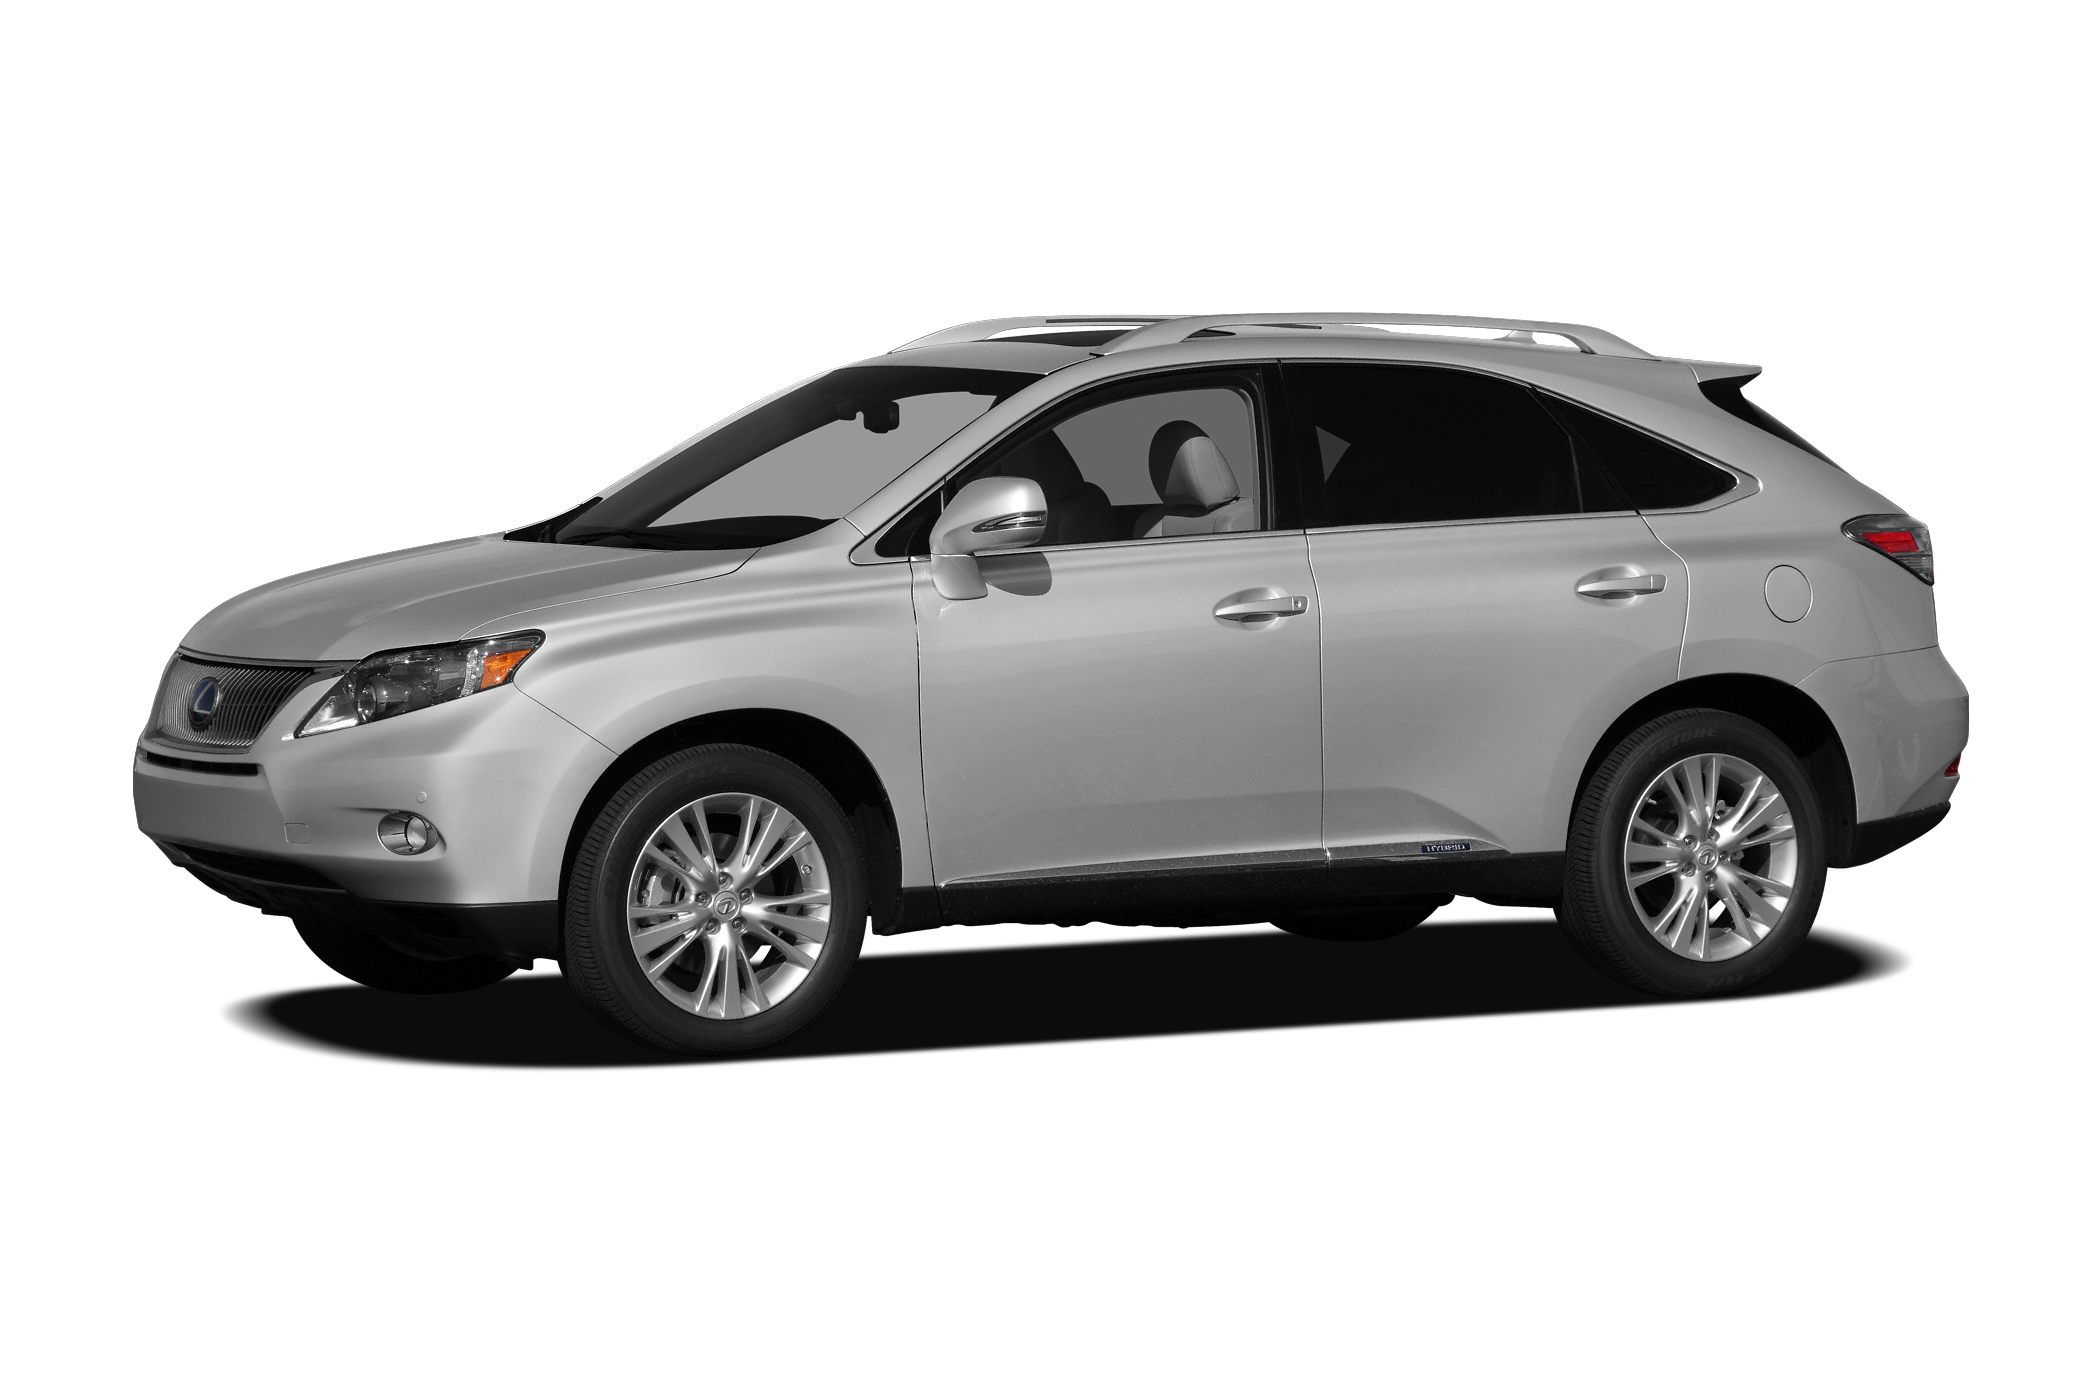 2012 Lexus RX 450h Base SUV for sale in Orlando for $28,999 with 50,117 miles